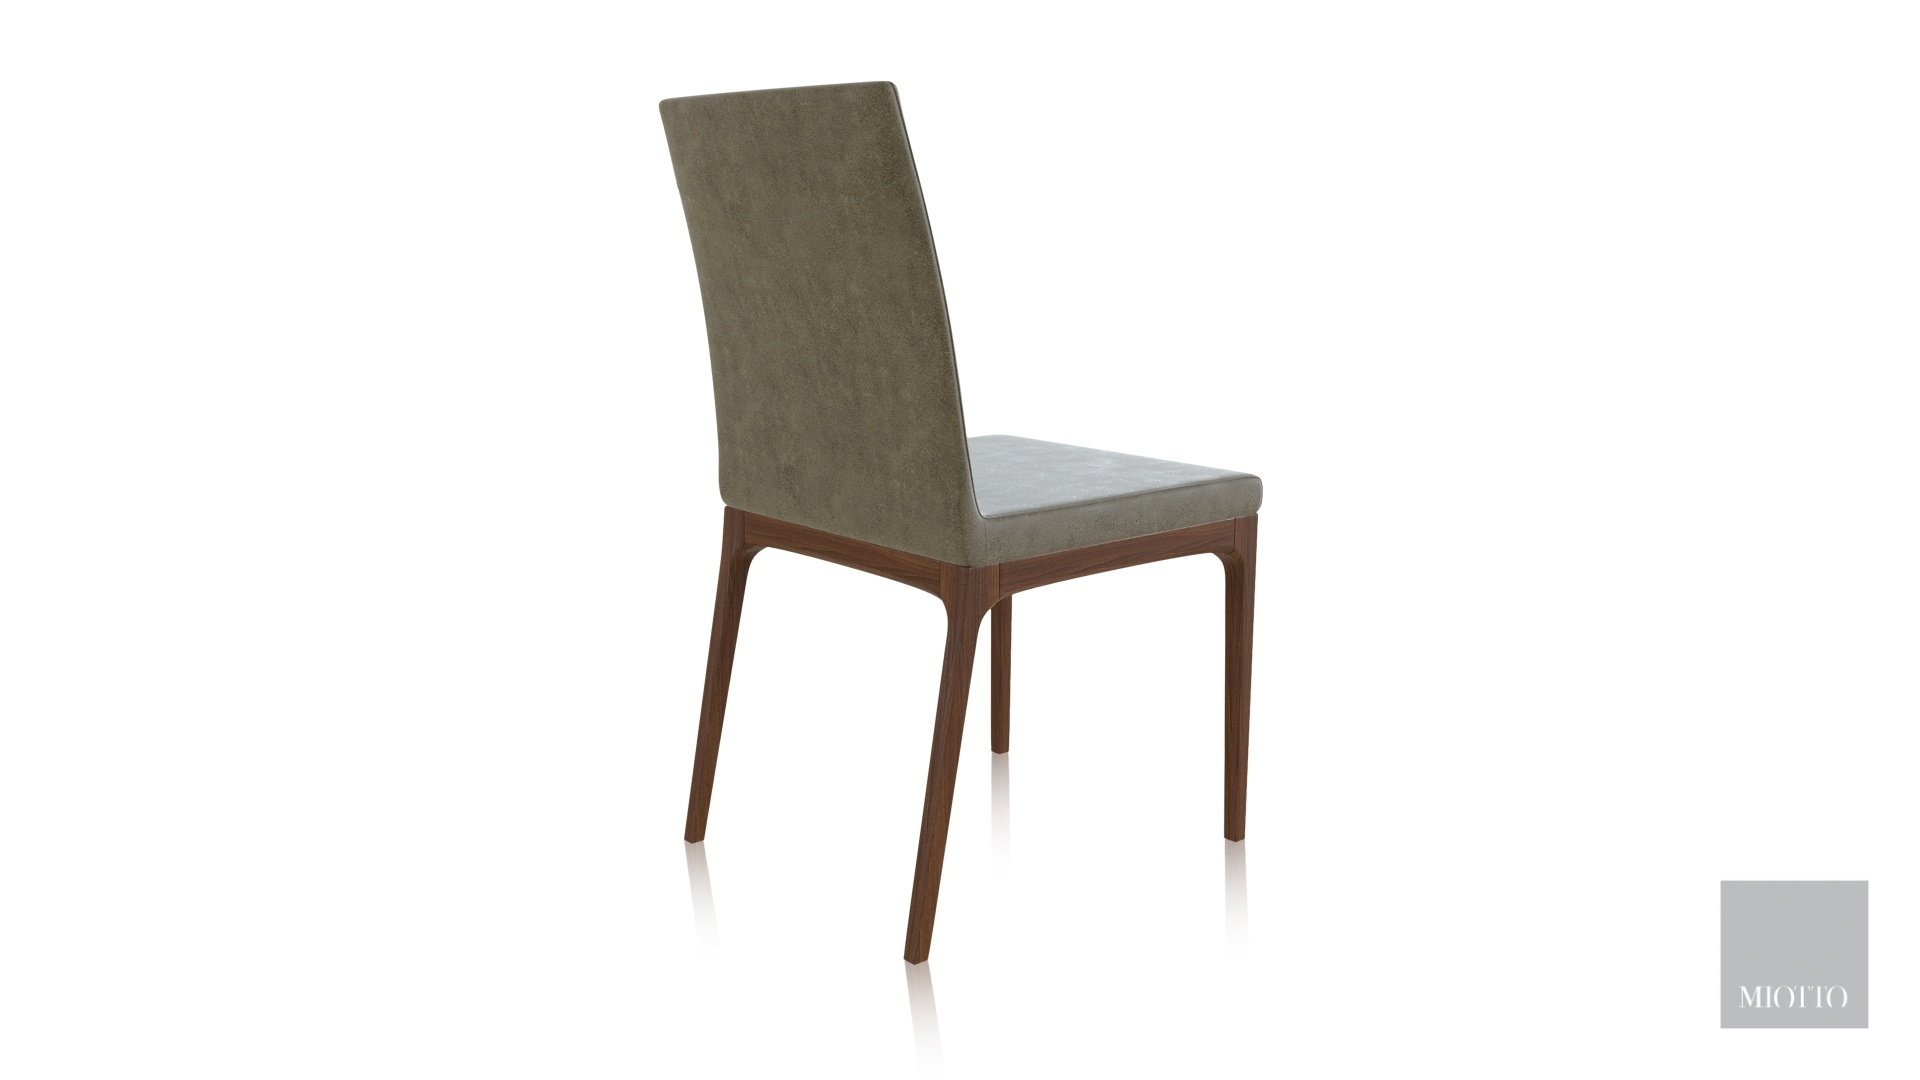 miotto_lanzo LB DC light grey back T miotto dining chair furniture